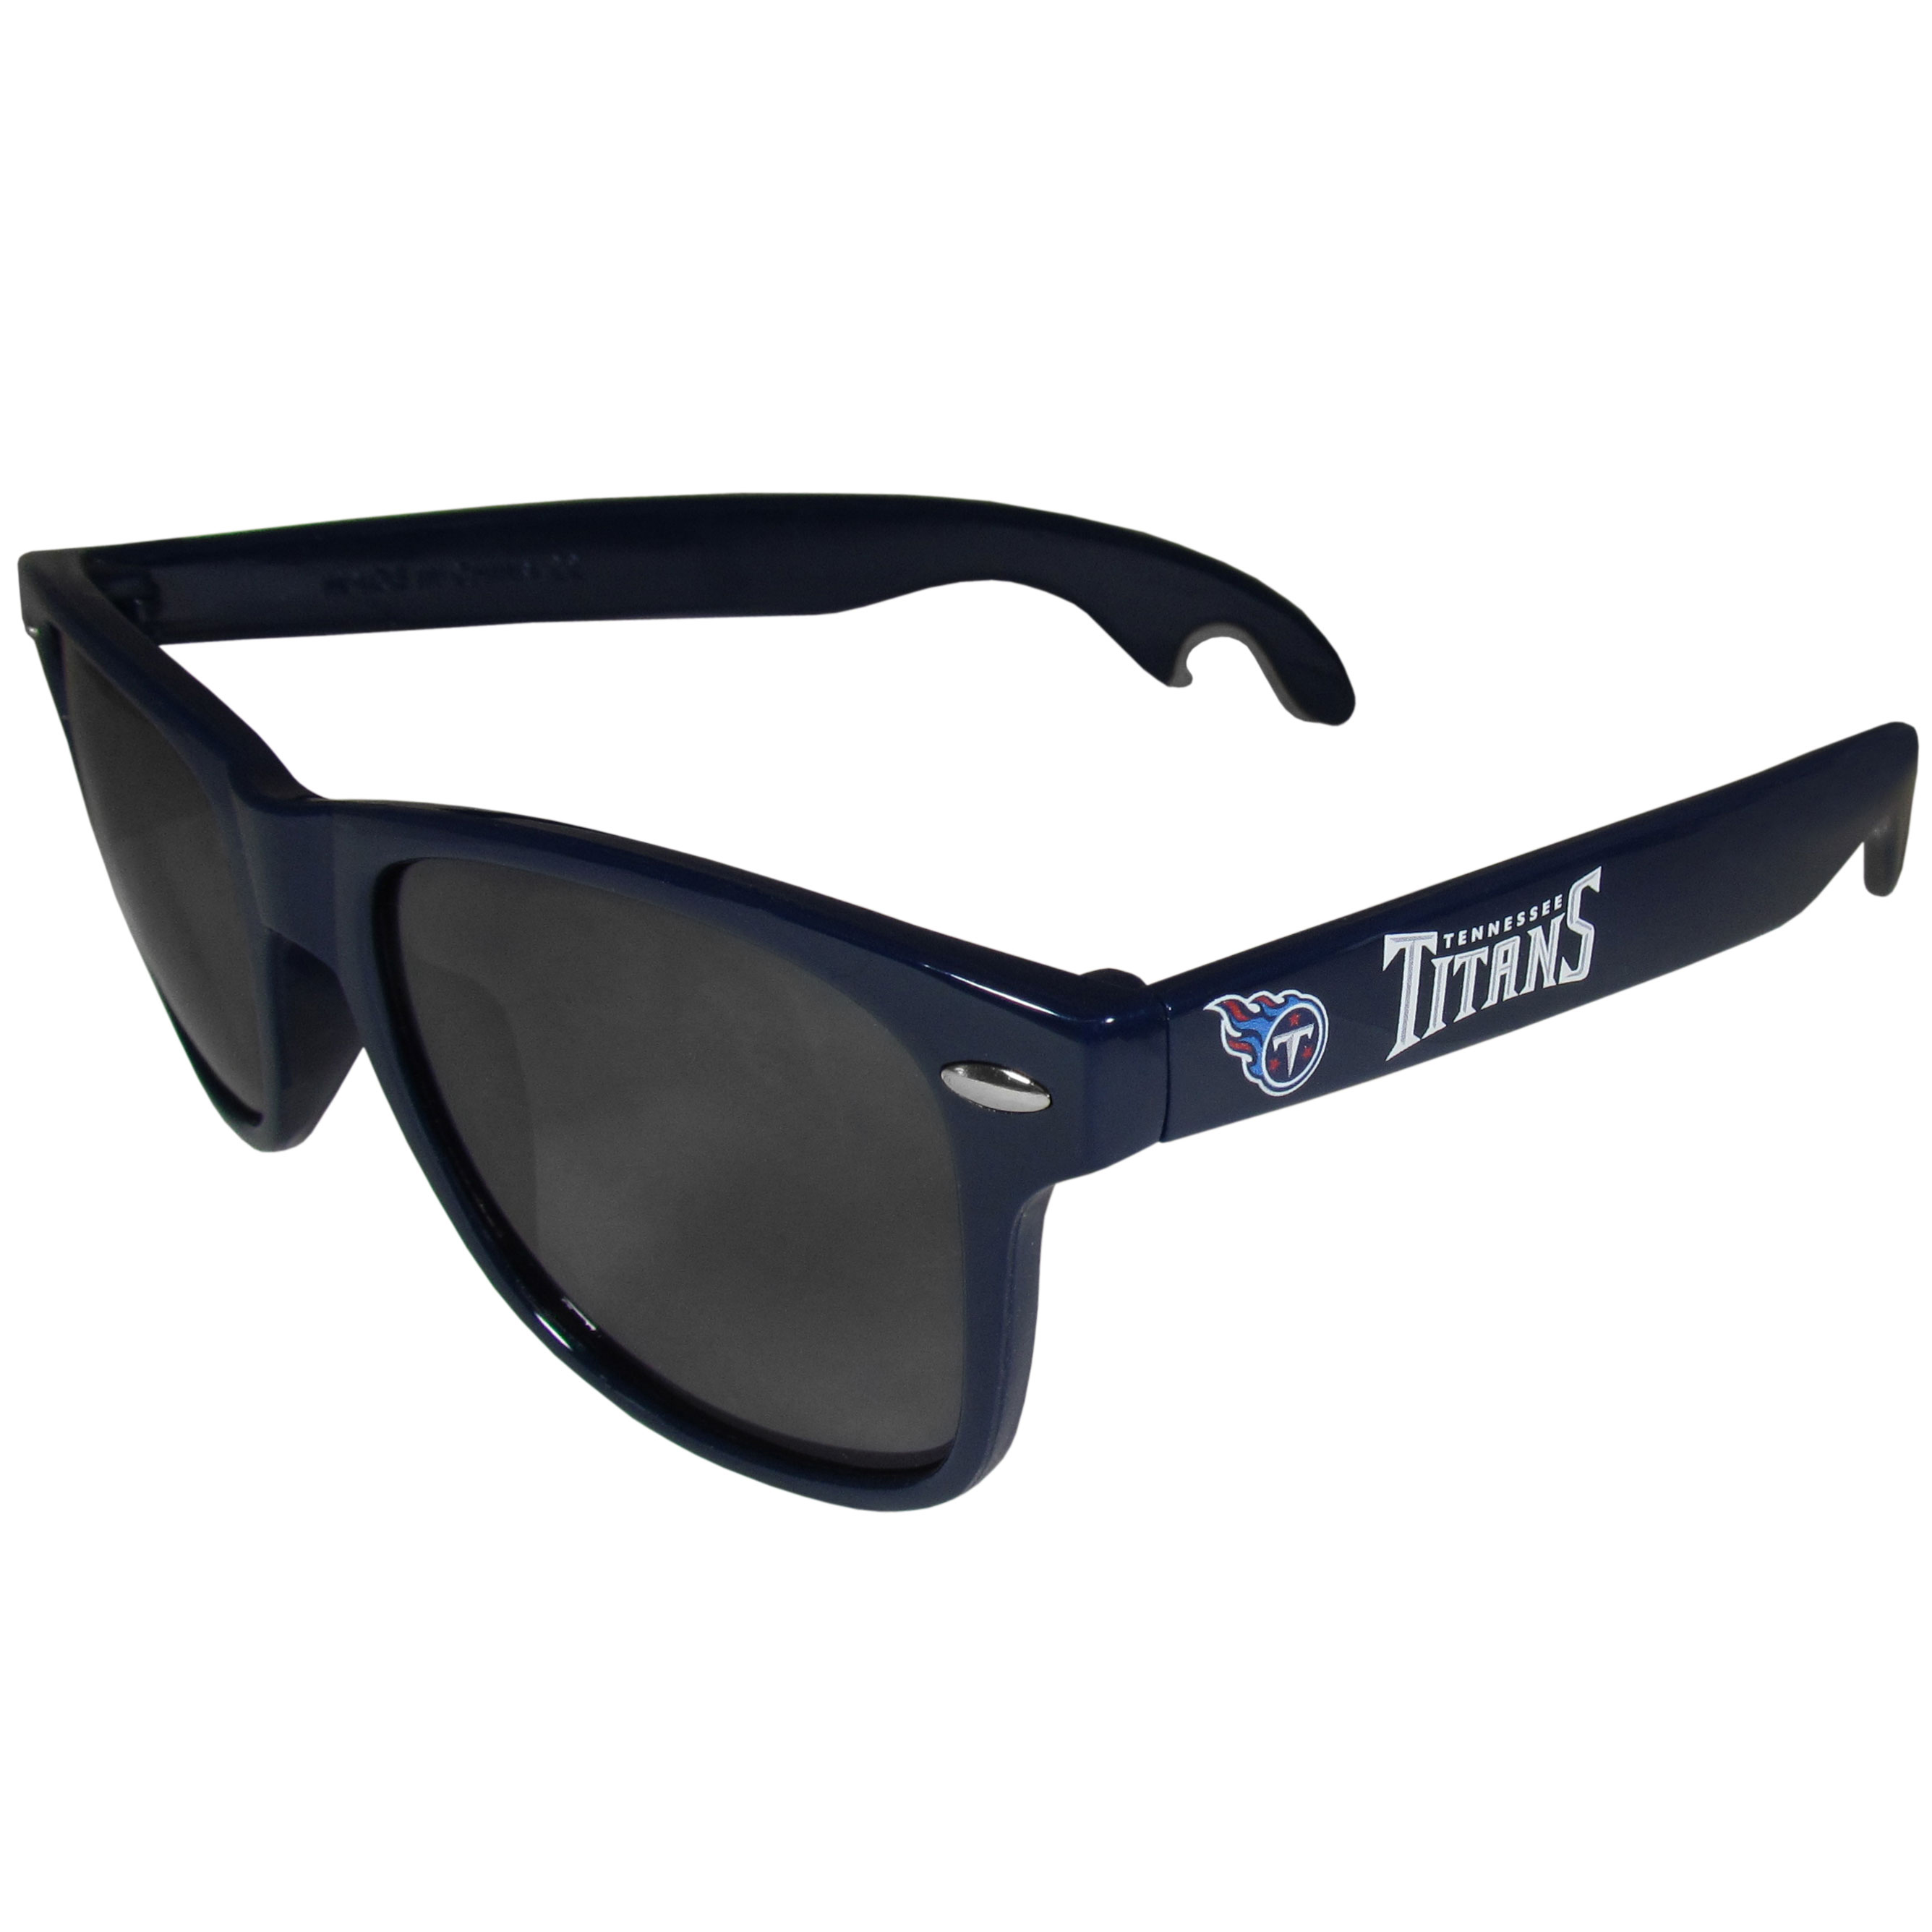 Tennessee Titans Beachfarer Bottle Opener Sunglasses, Dark Blue - Seriously, these sunglasses open bottles! Keep the party going with these amazing Tennessee Titans bottle opener sunglasses. The stylish retro frames feature team designs on the arms and functional bottle openers on the end of the arms. Whether you are at the beach or having a backyard BBQ on game day, these shades will keep your eyes protected with 100% UVA/UVB protection and keep you hydrated with the handy bottle opener arms.